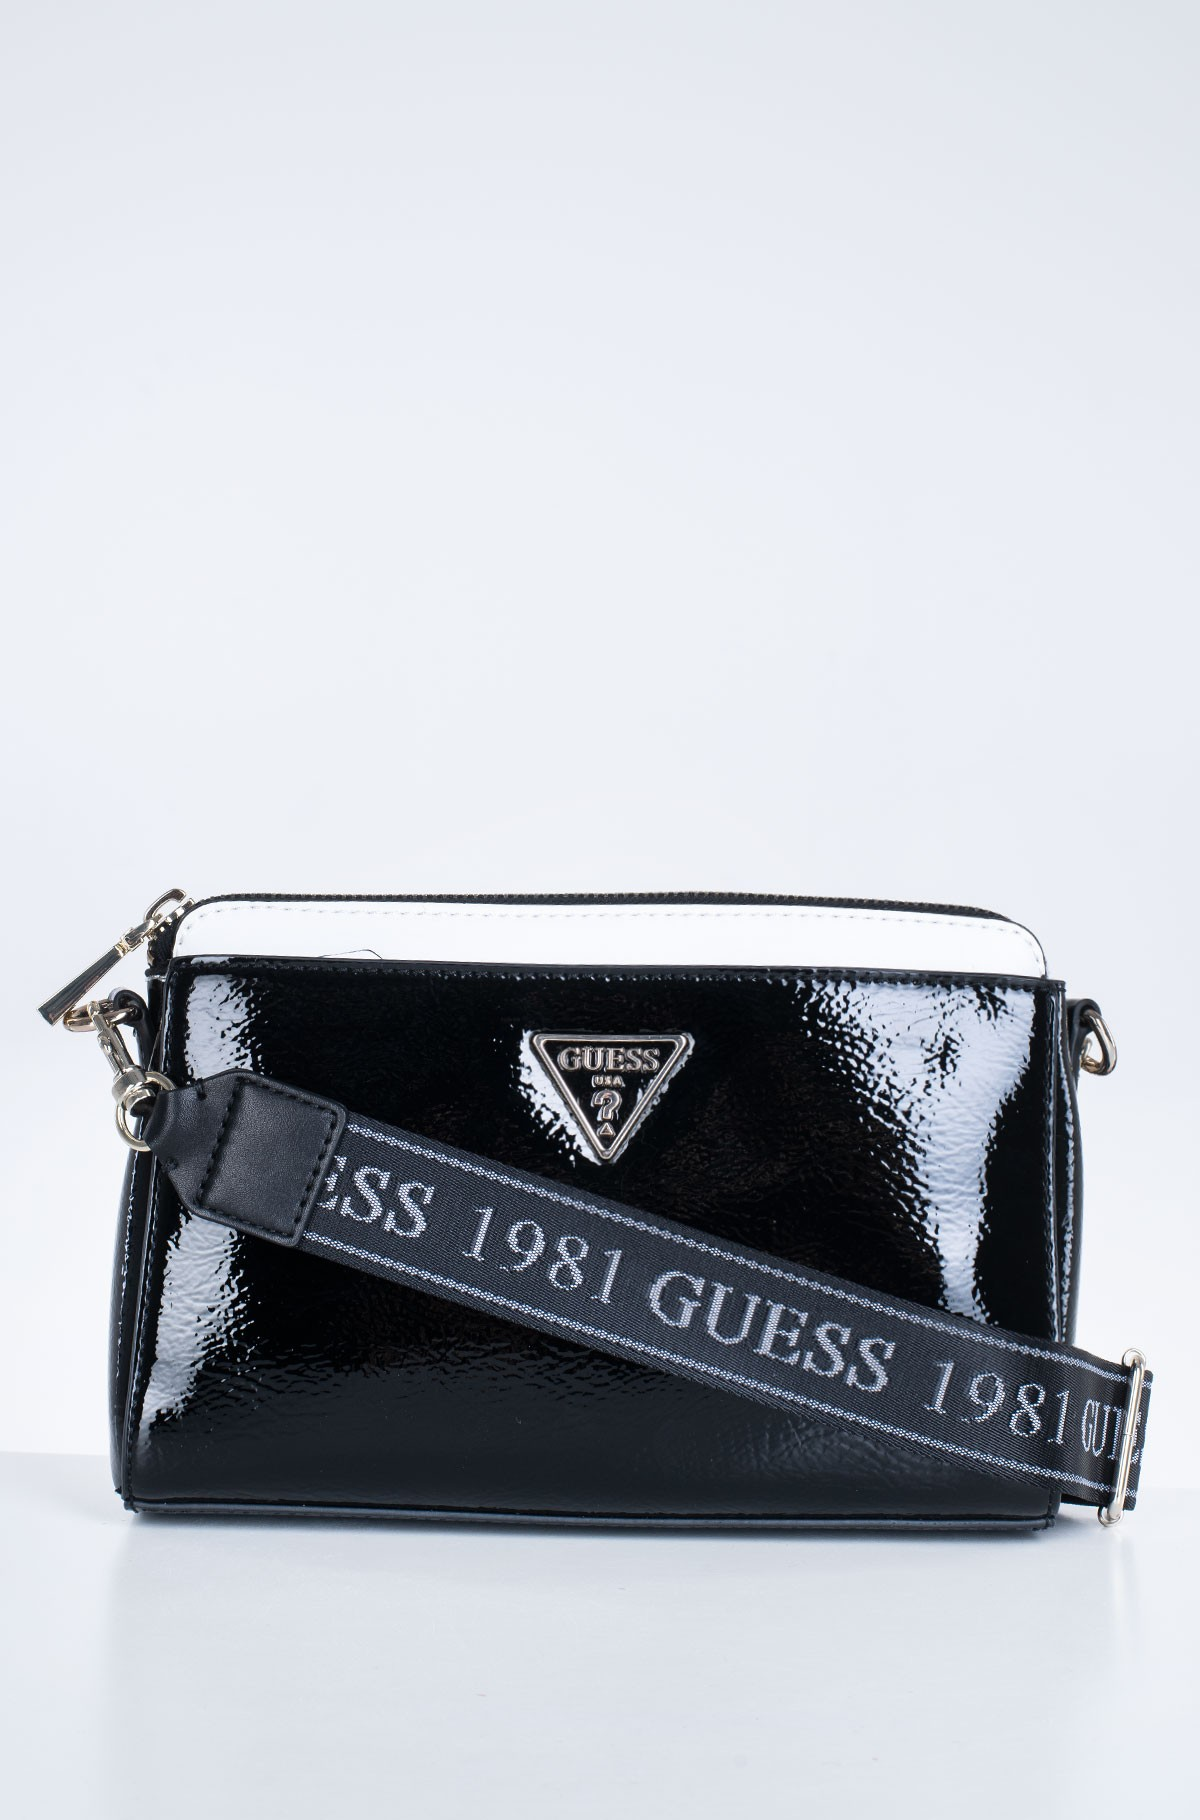 Shoulder bag HWTG72 91140-full-1